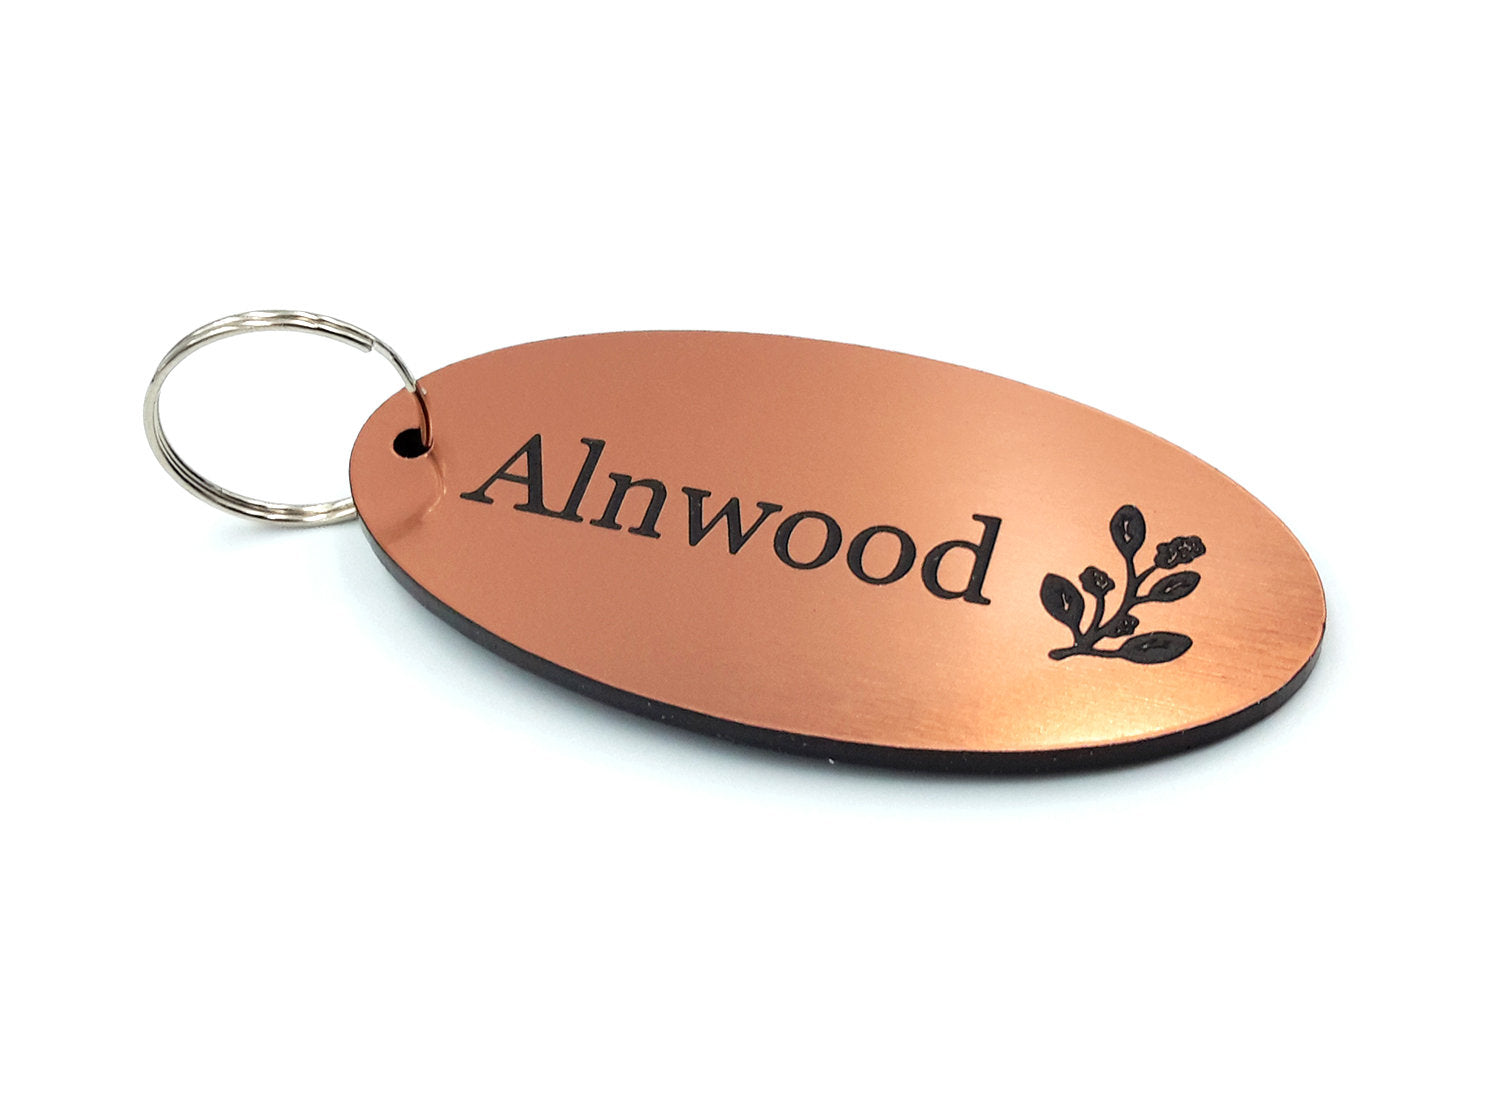 Personalised Key Fobs - COPPER OVAL - Ideal for Hotels, Bed and Breakfast, Guest Houses